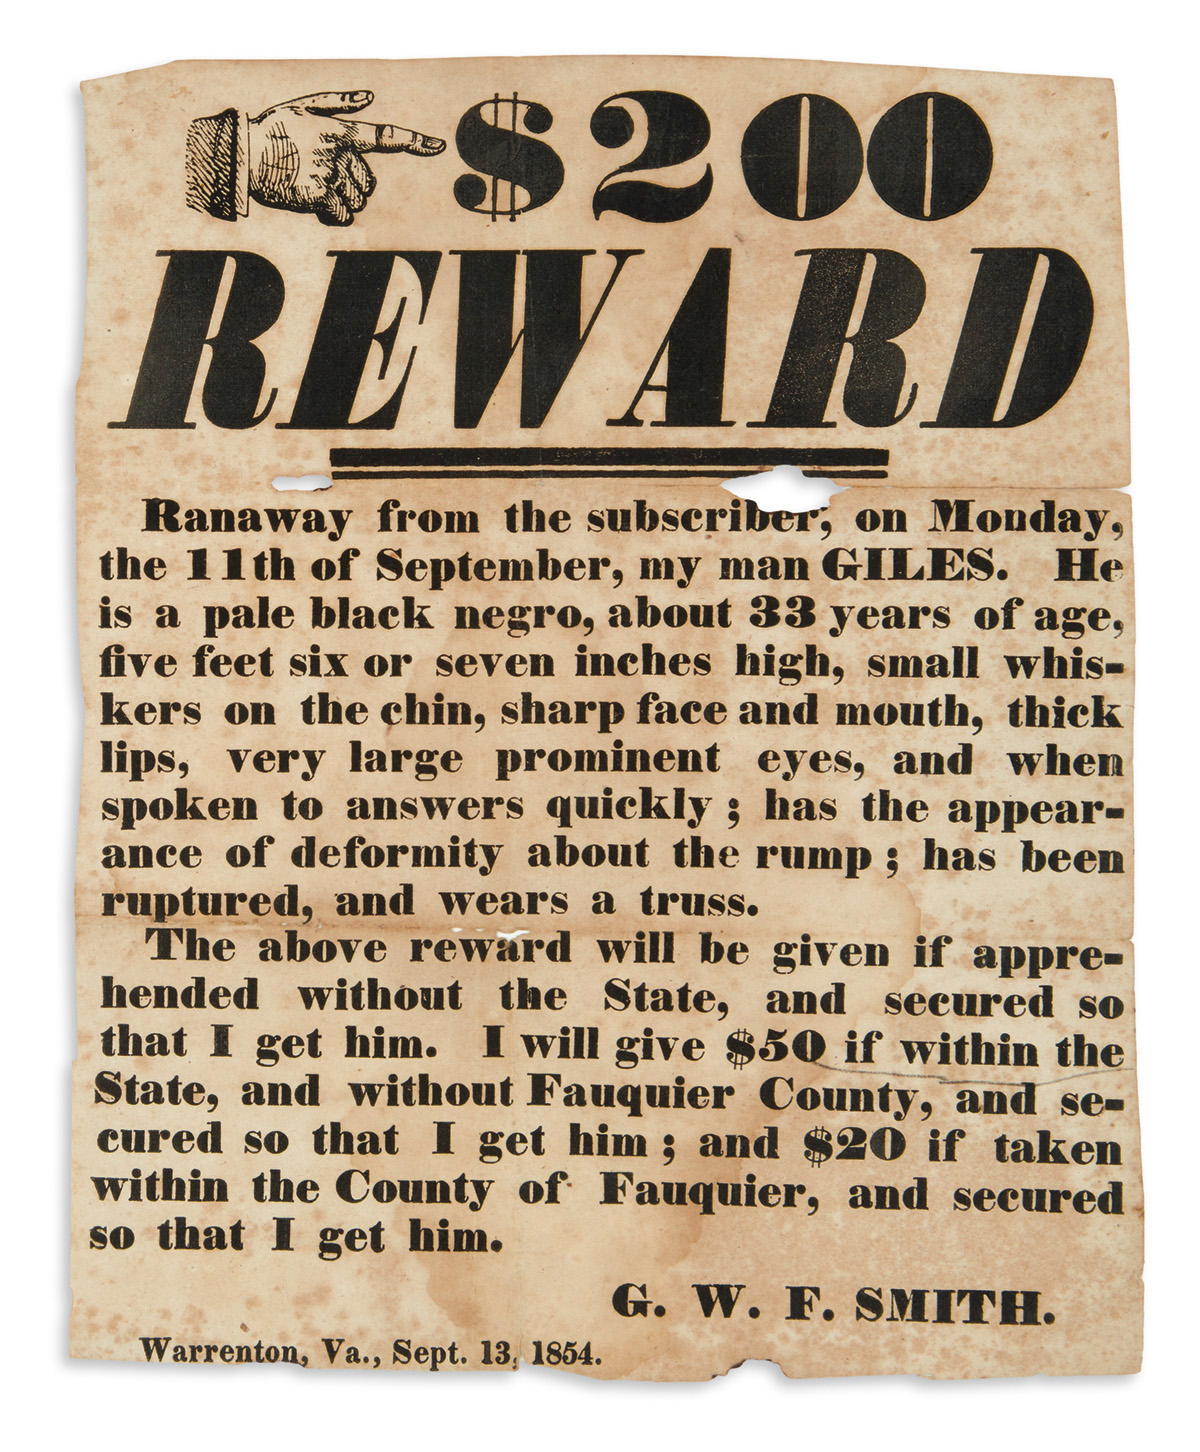 (SLAVERY AND ABOLITION.) G.W.F. Smith. $200 Reward, Ranaway from the Subscriber . . . My Man Giles.